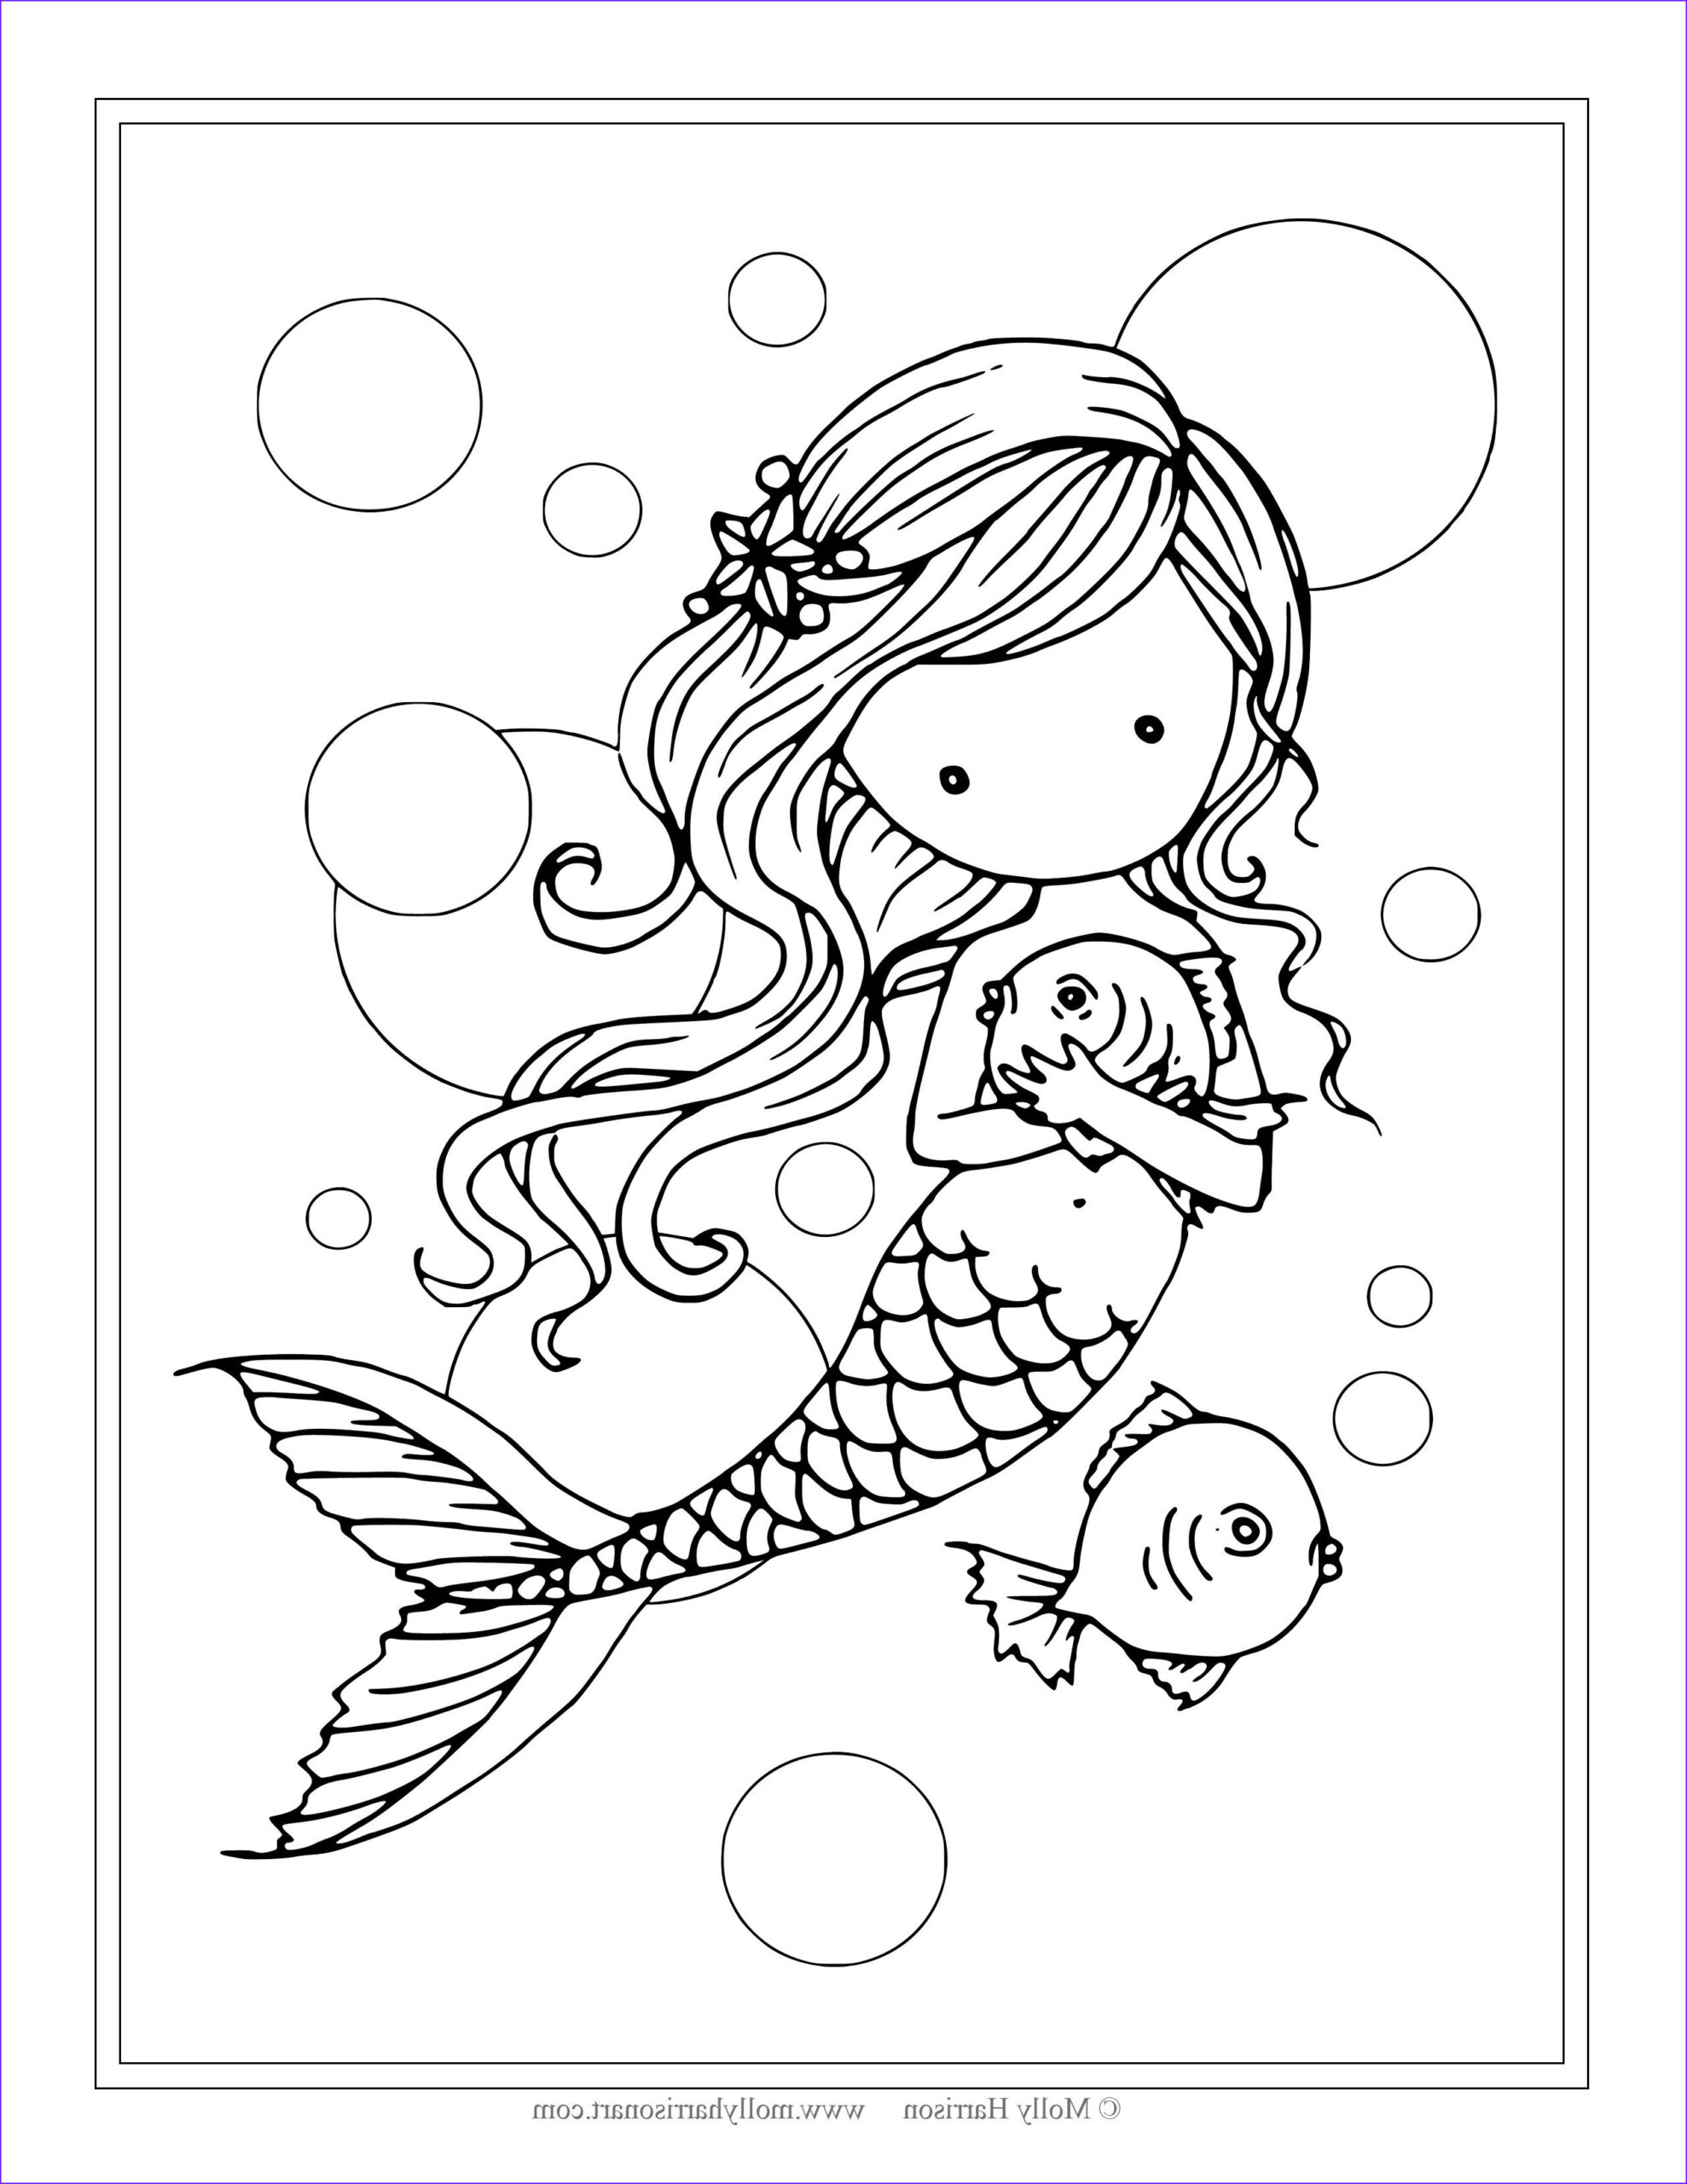 Mermaid Coloring Pages Awesome Gallery Free Mermaid with Fish Coloring Page by Molly Harrison